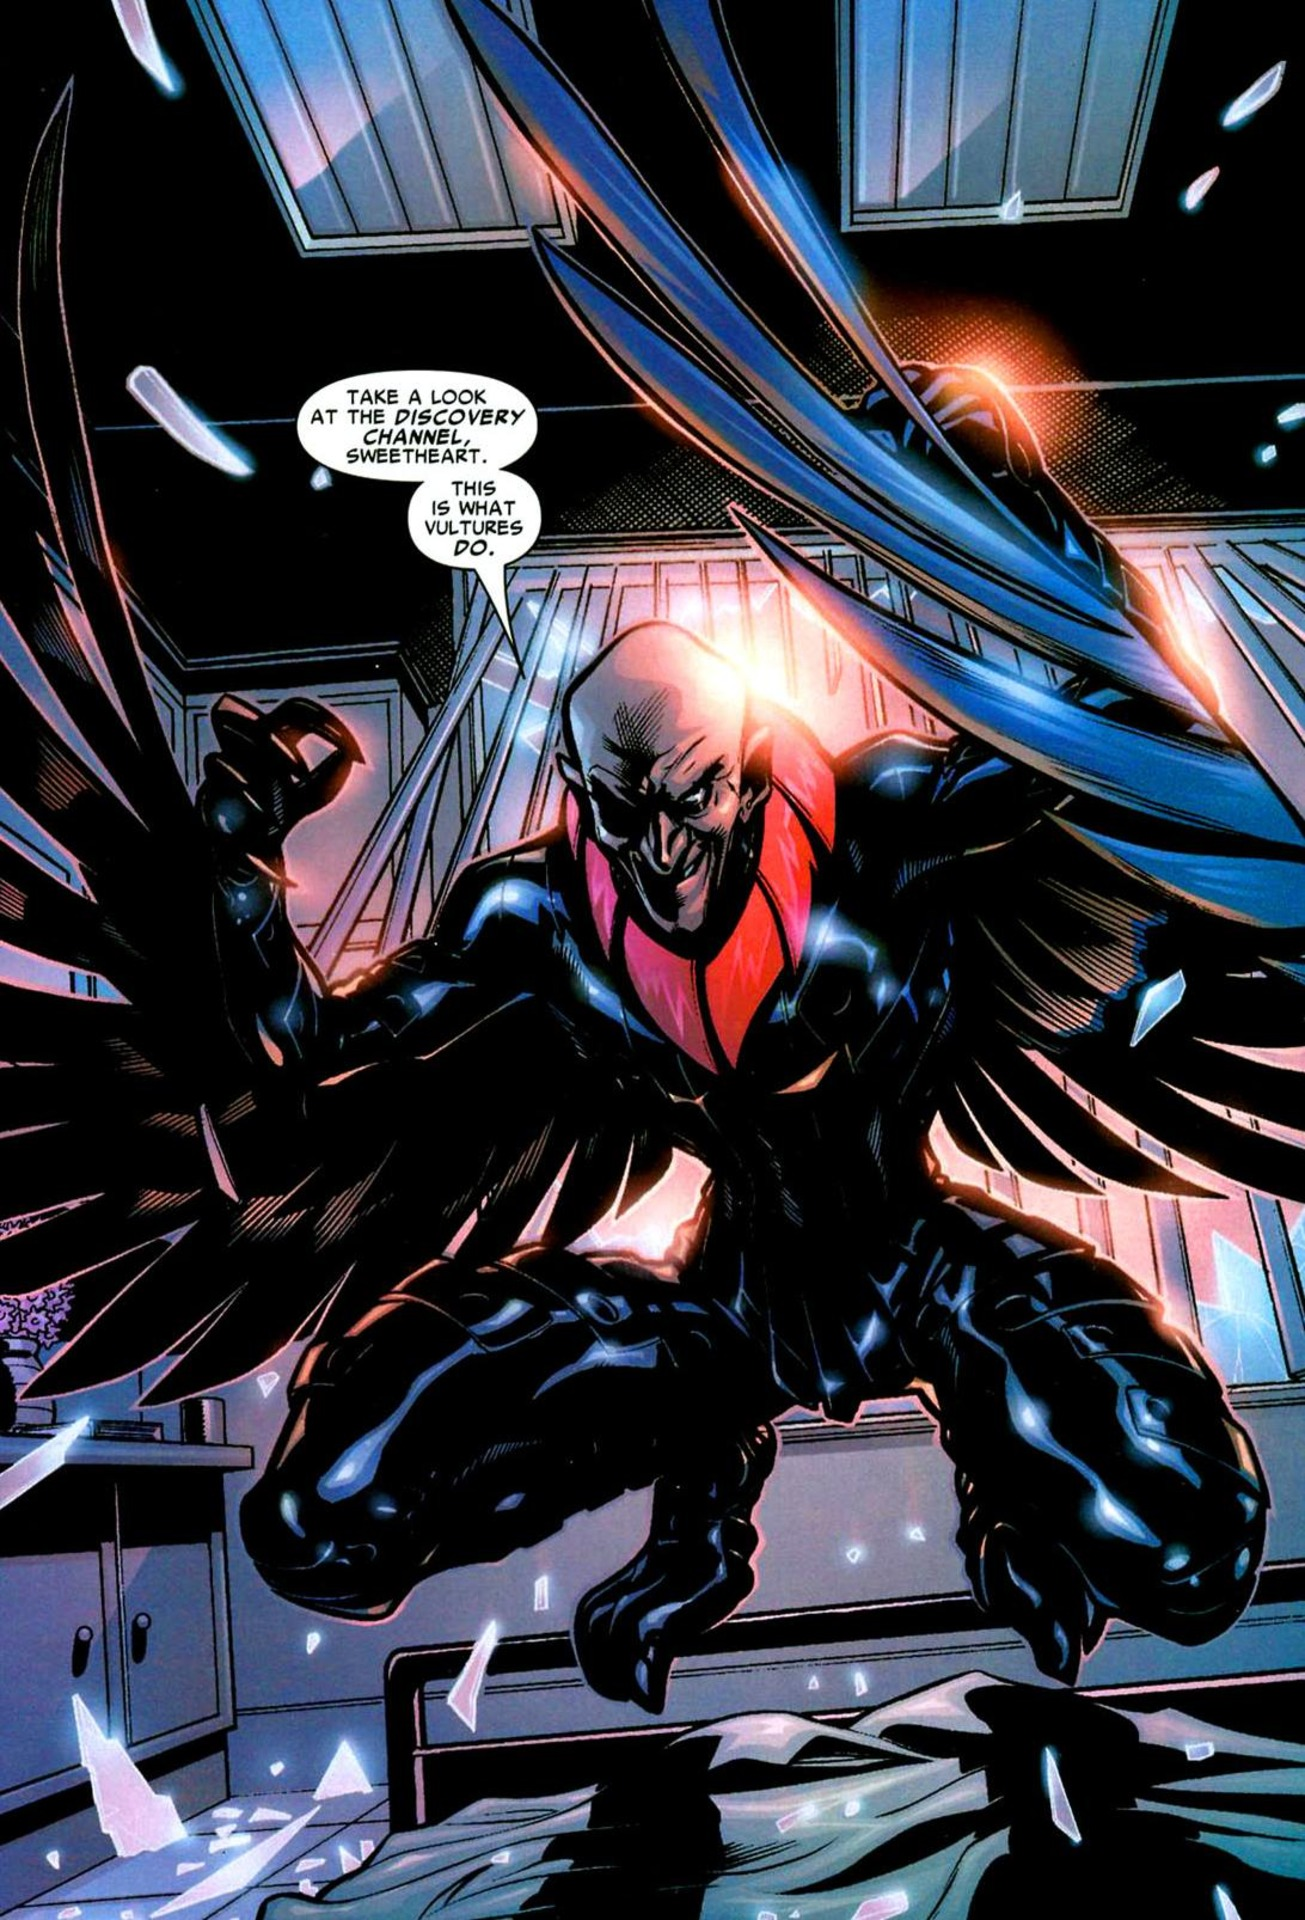 http://vignette2.wikia.nocookie.net/spiderman/images/e/ea/3024717-vulture-marvel_knights_spider-man-3.jpg/revision/latest?cb=20150725174841